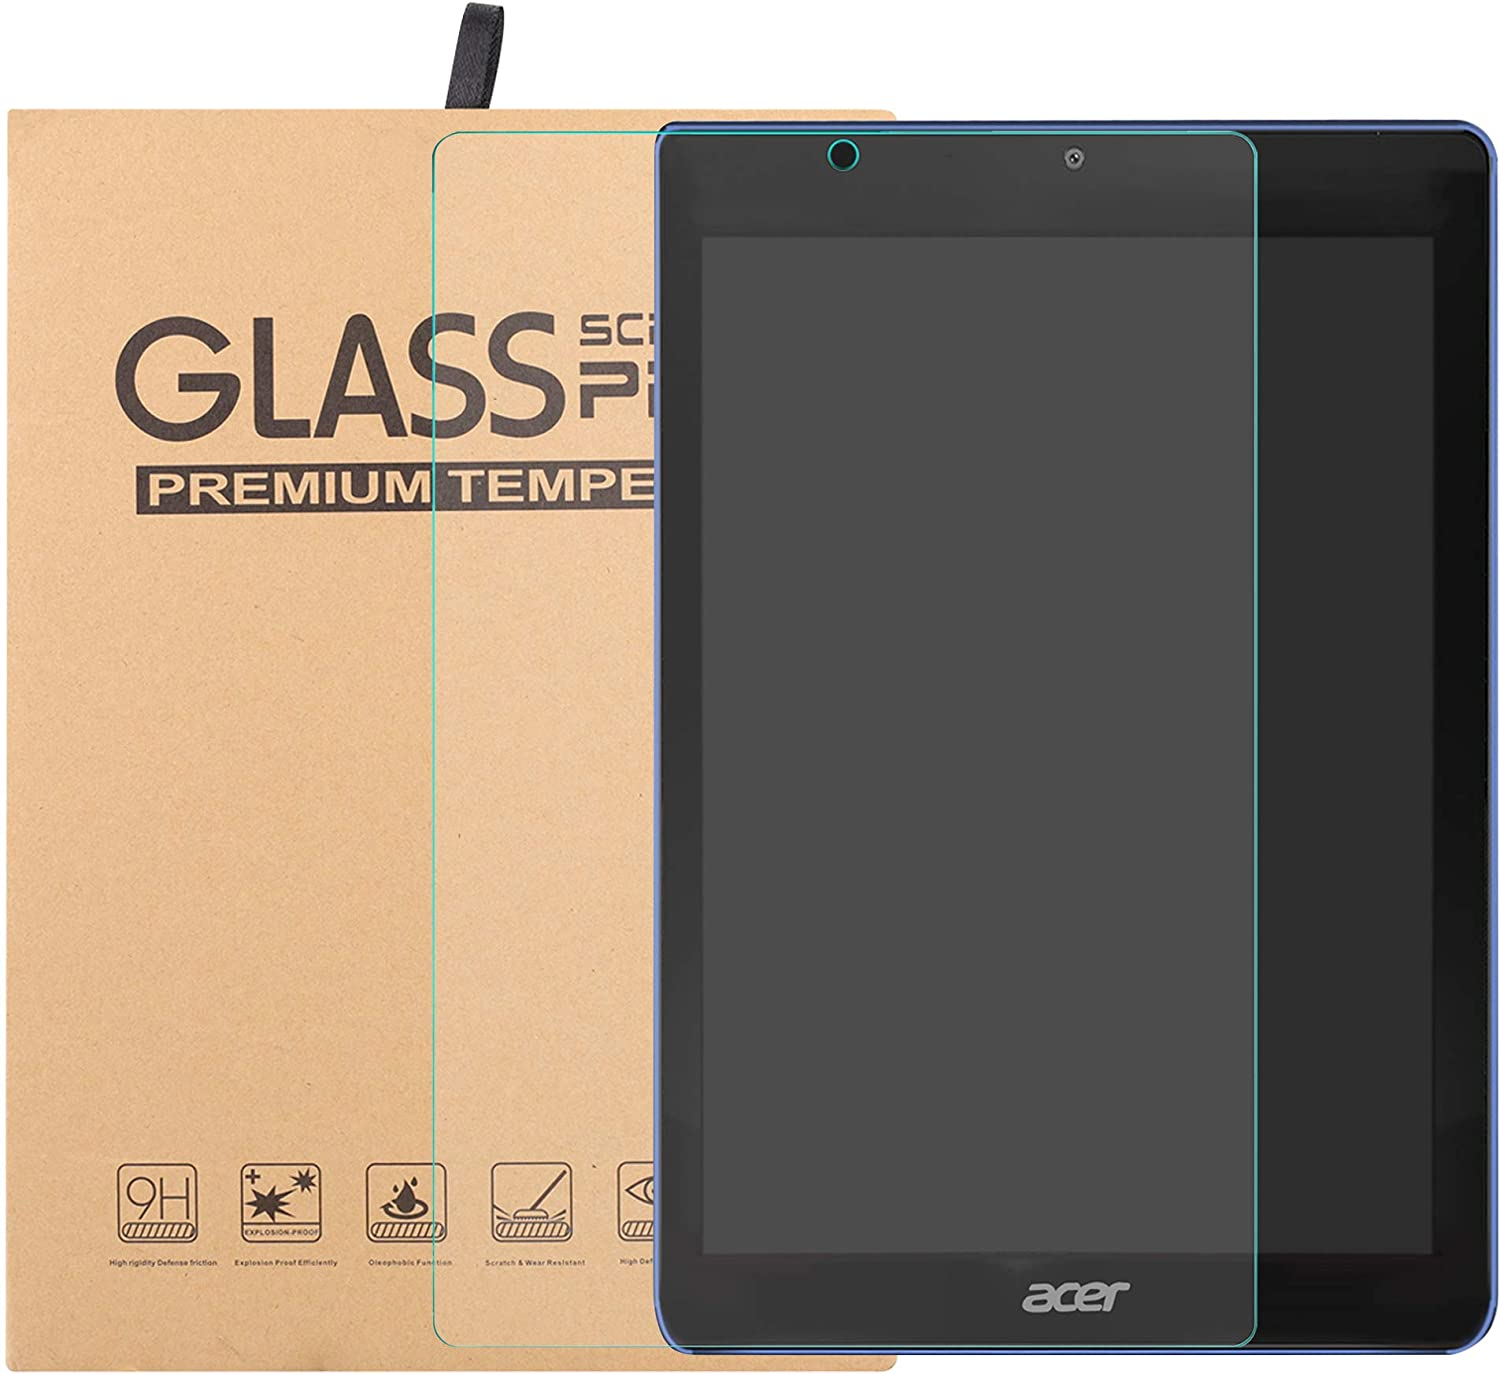 "Acer Iconia One 10 B3-A50 Tempered Glass Screen Protector,Labanema Scratch-Resistant No-Bubble 9H Hardness HD Ultra Clear Film for 10.1"" Acer Iconia One 10 B3-A50 Tablet"